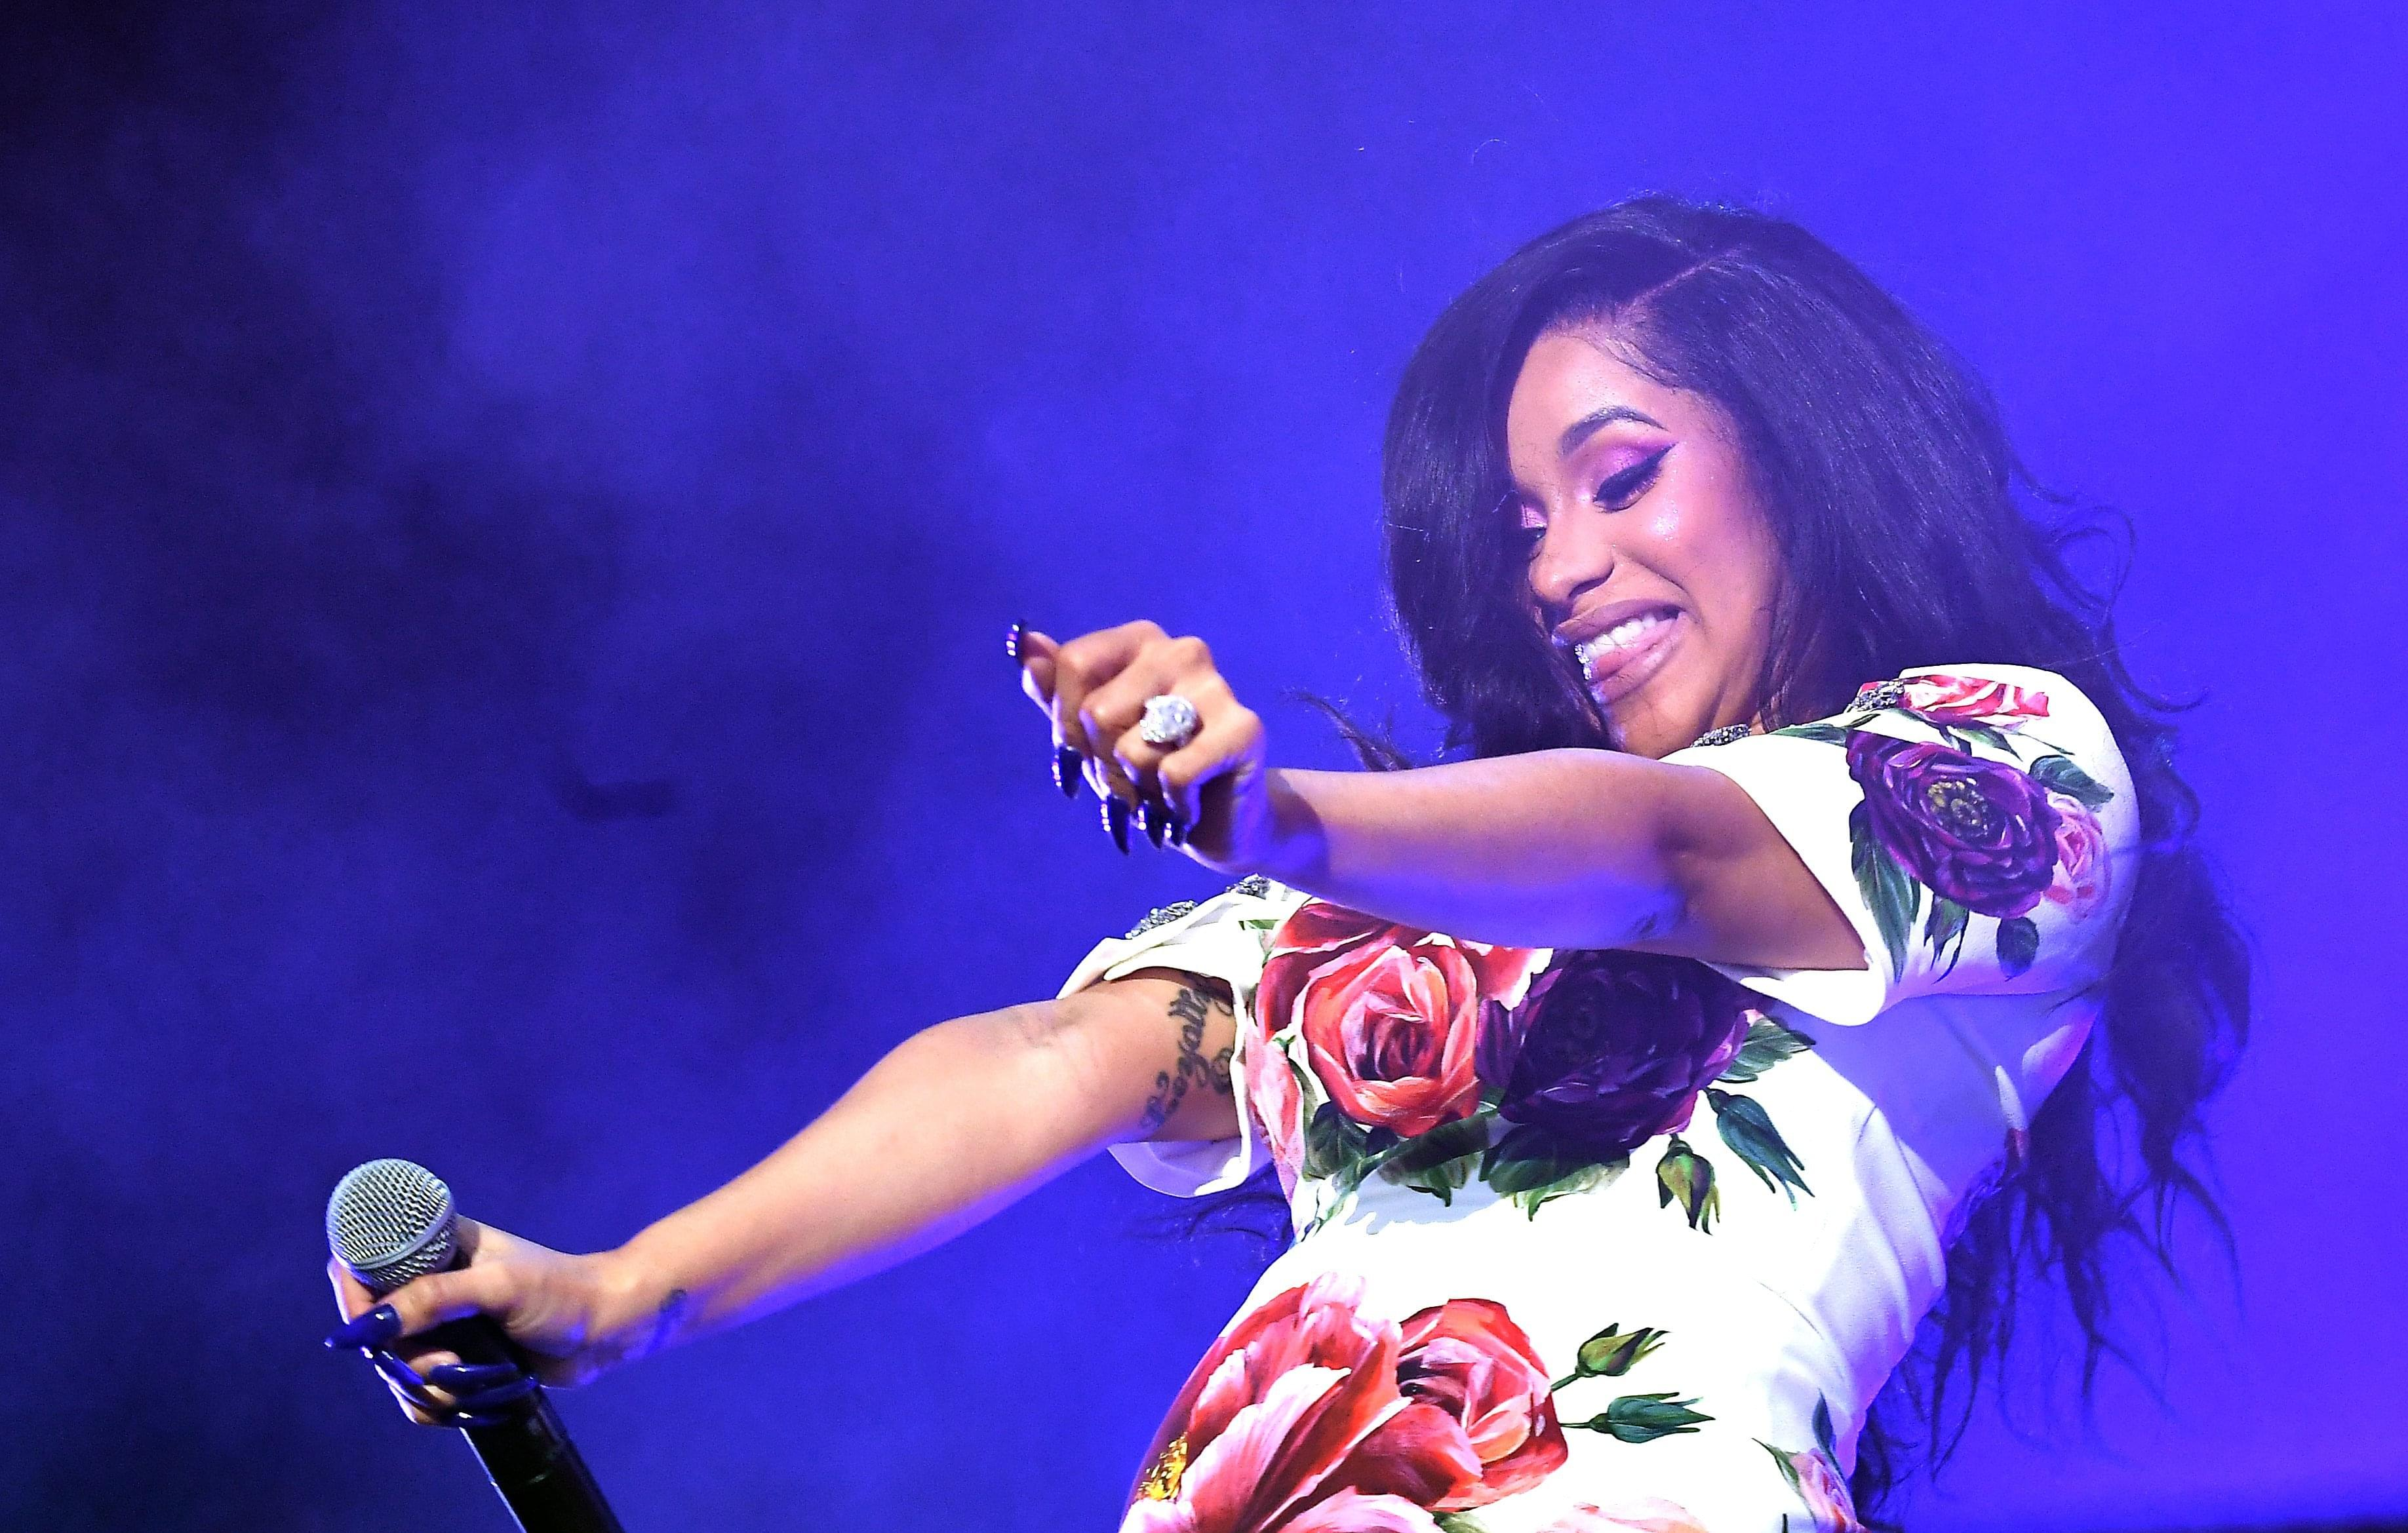 Cardi B Turned Down A Seven Figure Offer Of Baby Pics Of Baby Kulture